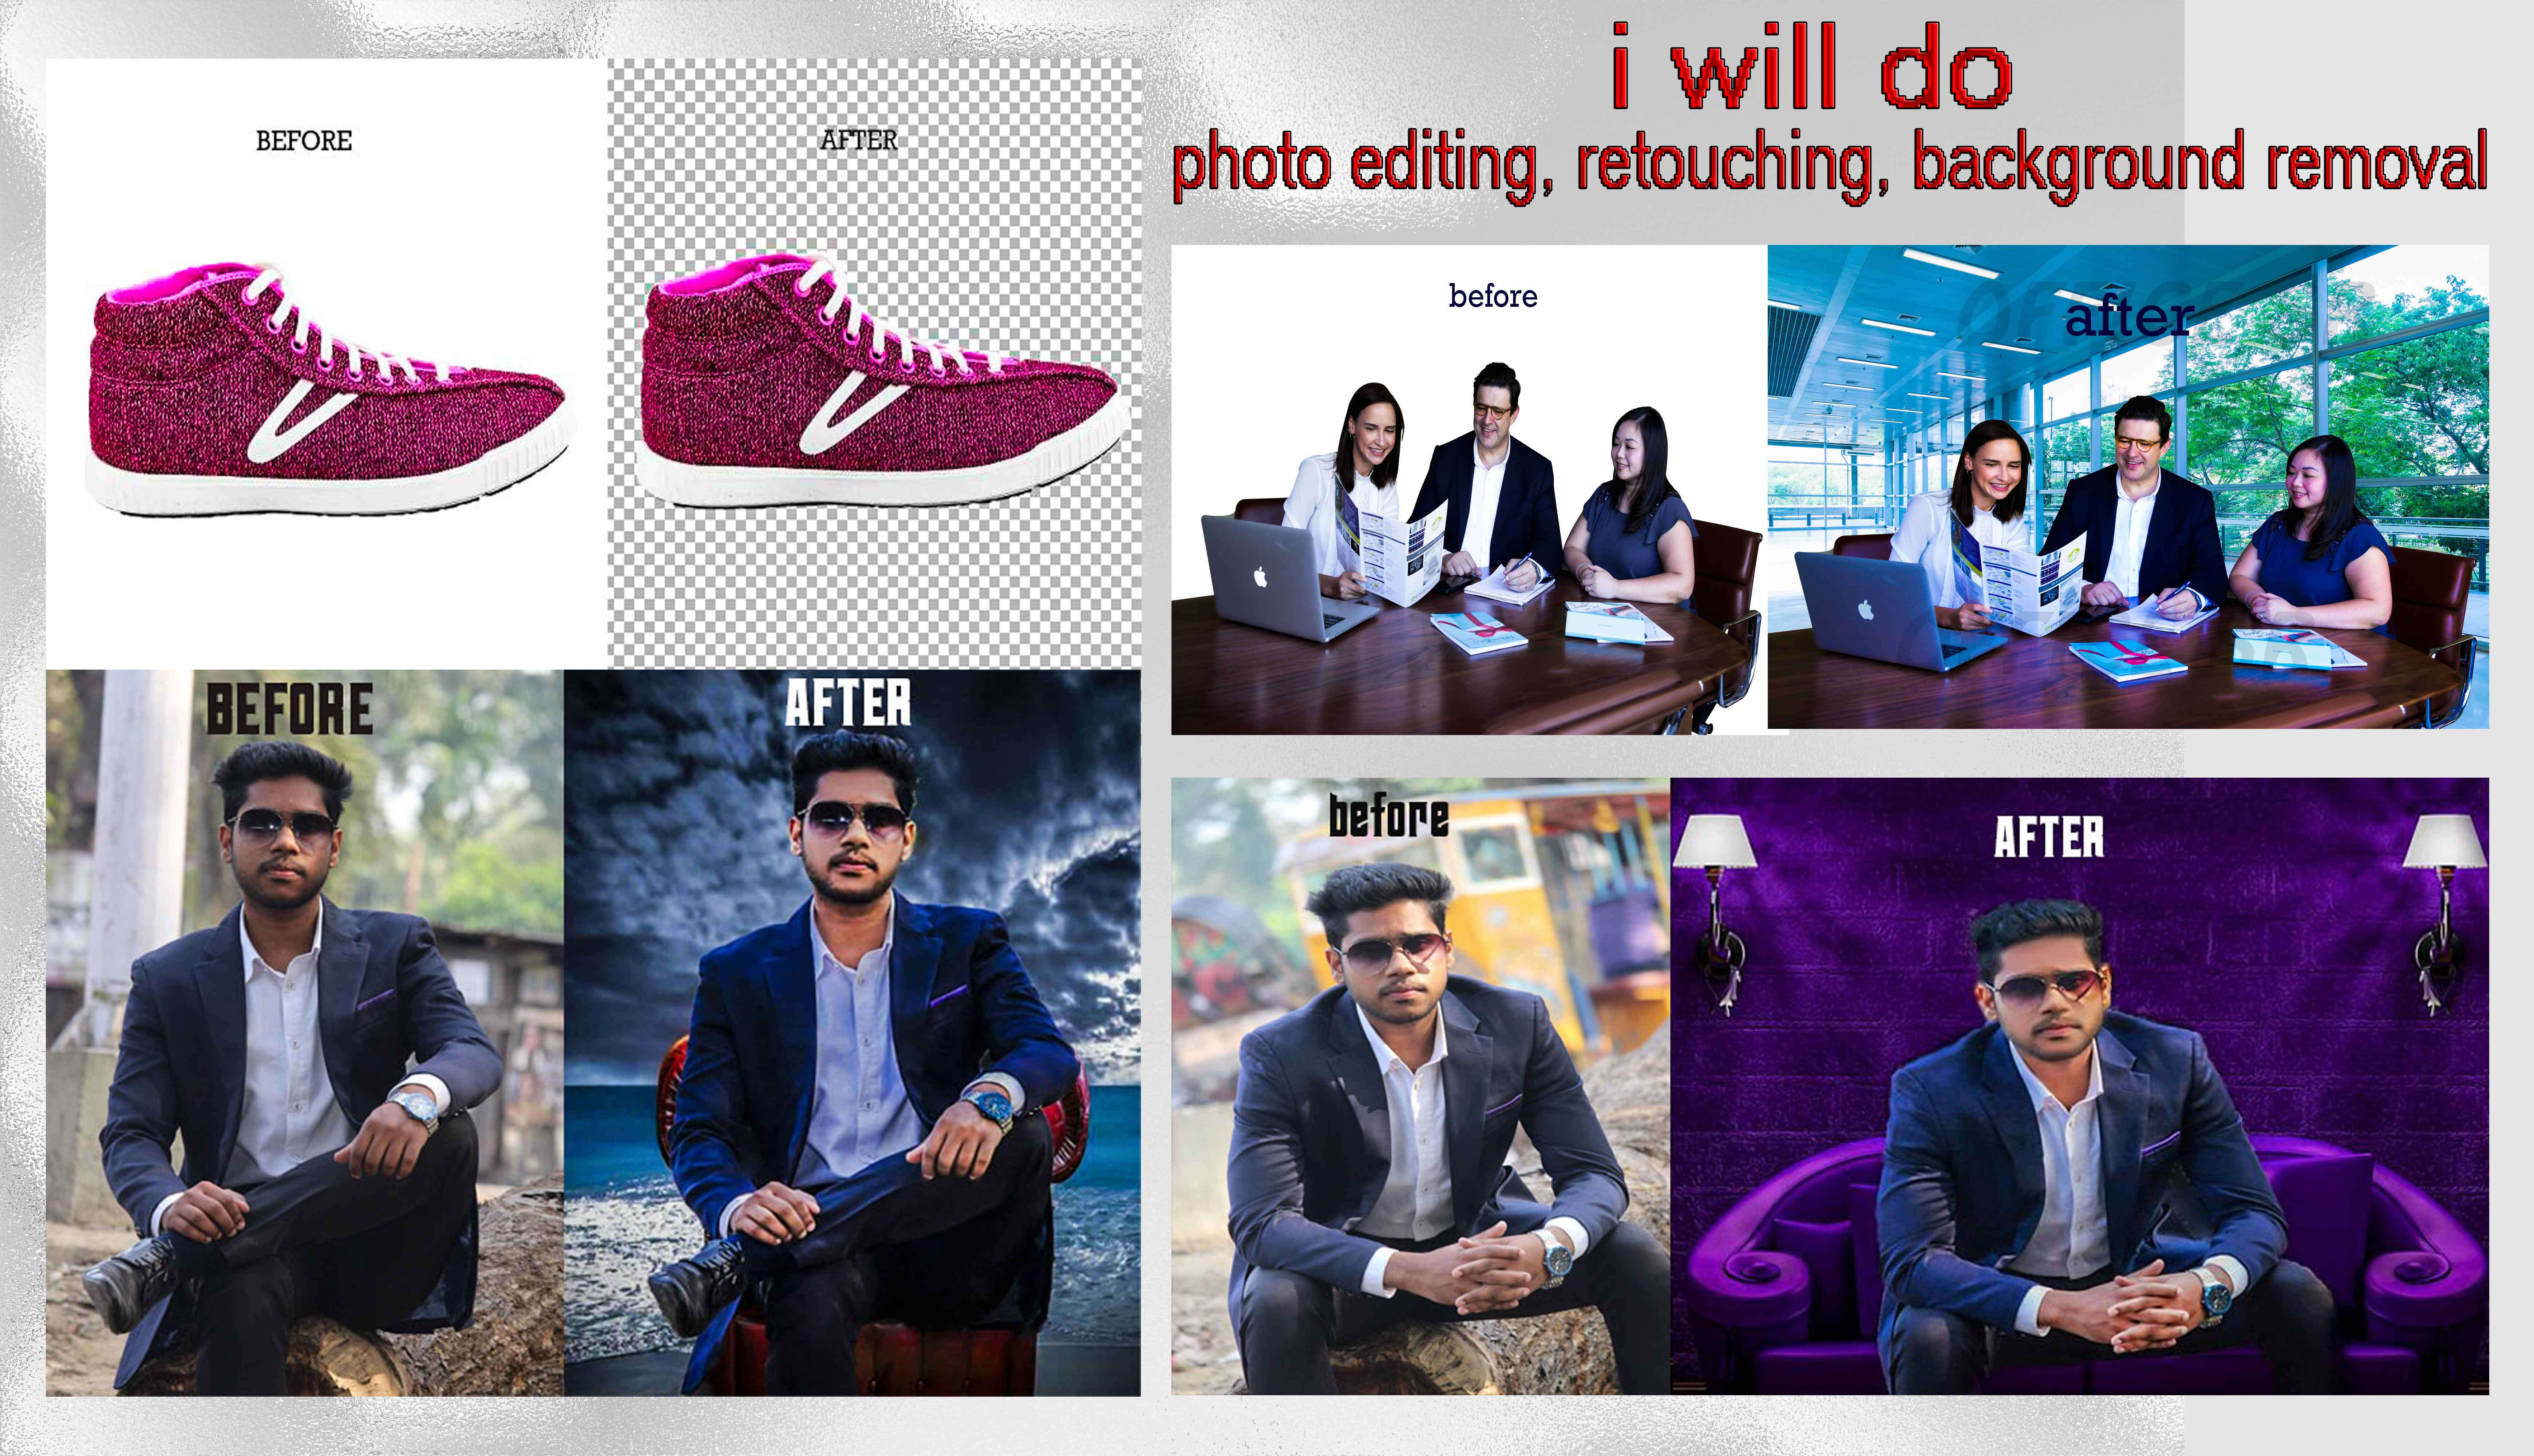 I will do any kind of photoshop photo editing,  retouching,  background removal etc.